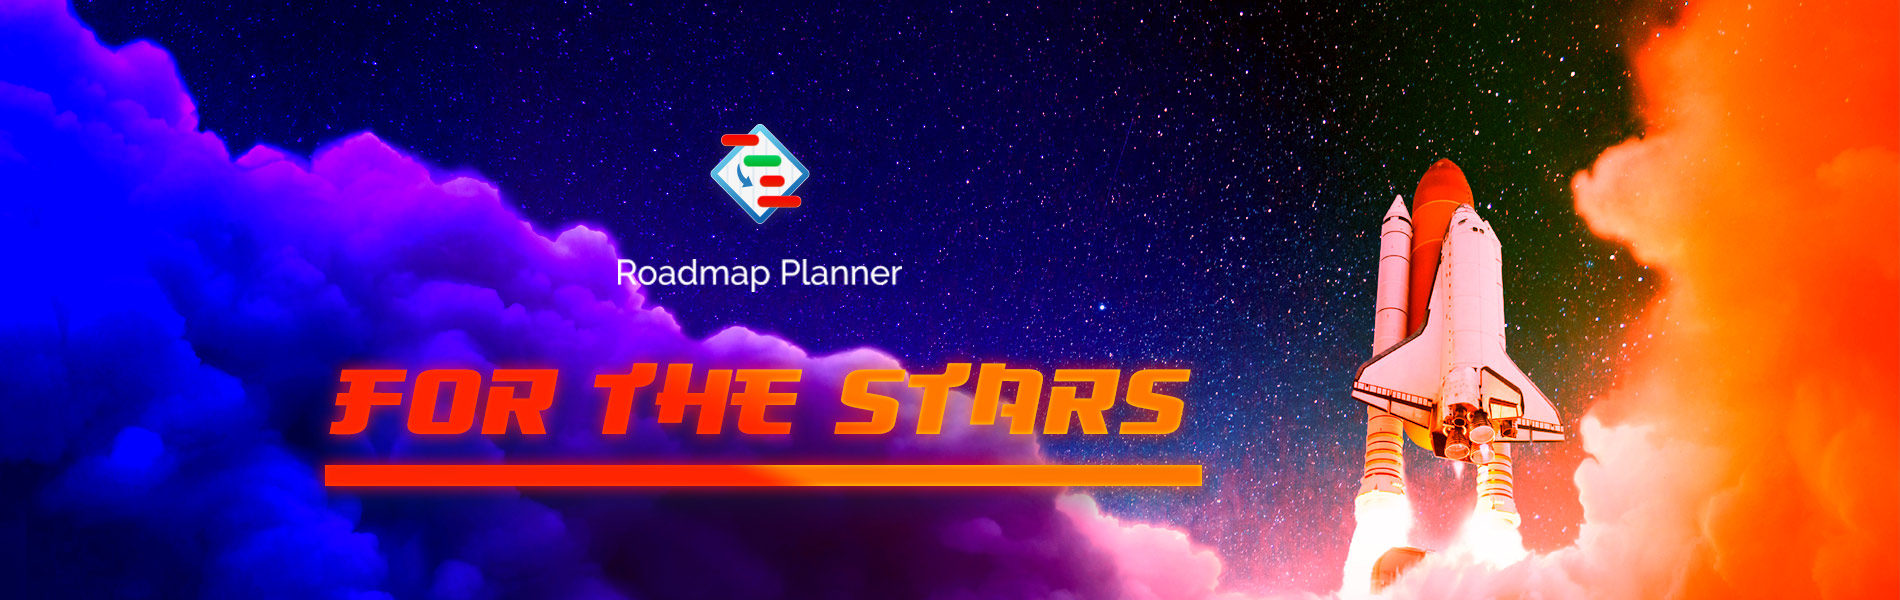 Develop business strategy with Roadmap Planner